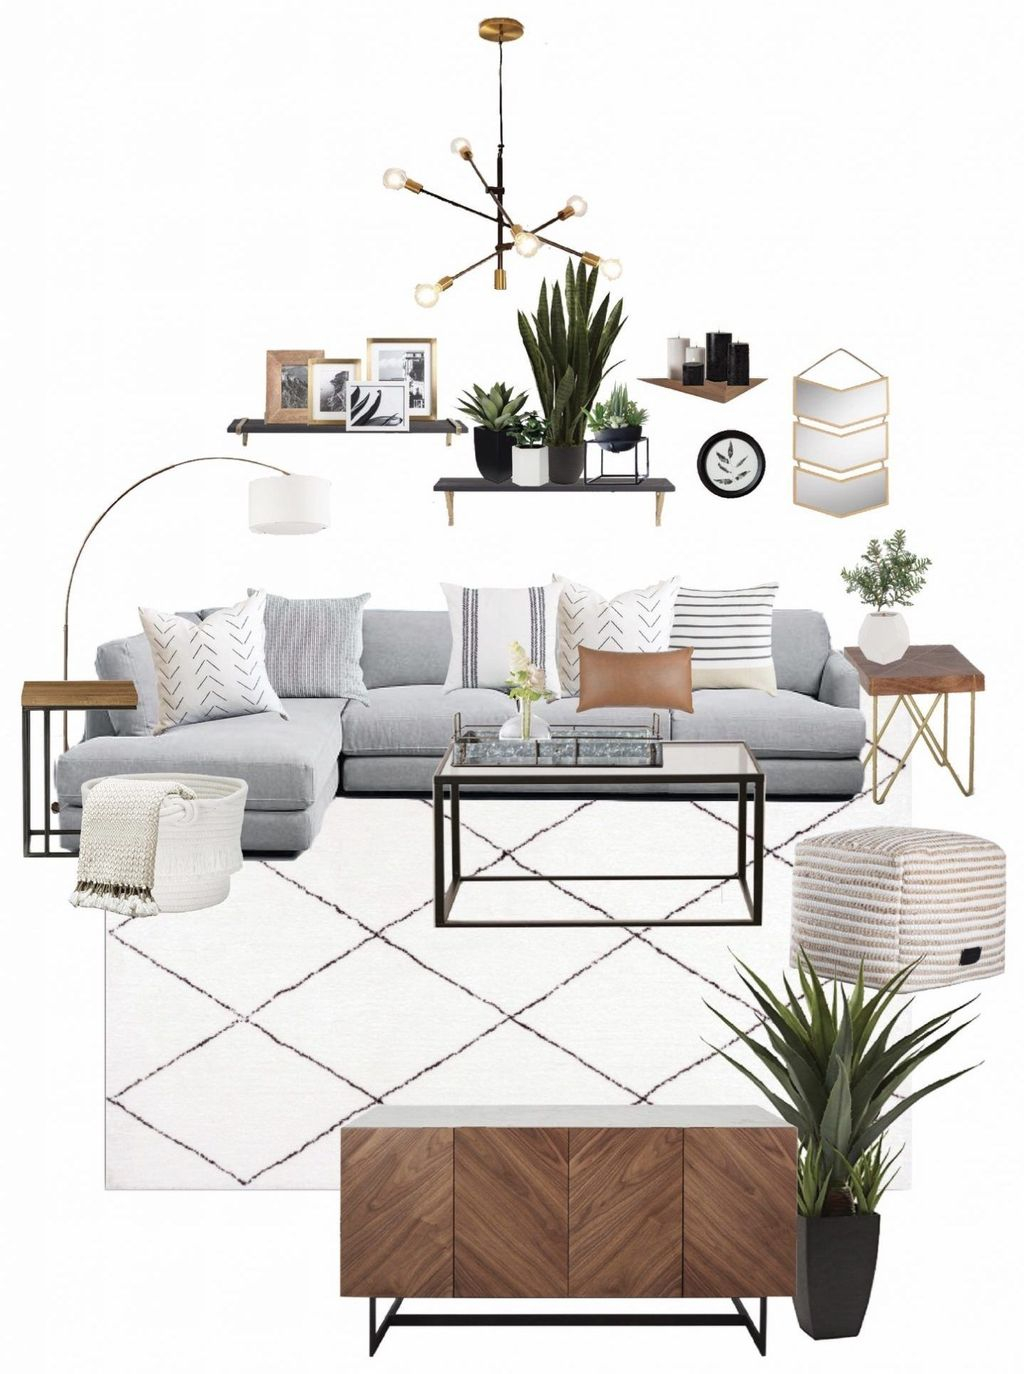 Stunning Apartment Living Room Decorating Ideas On A Budget 24